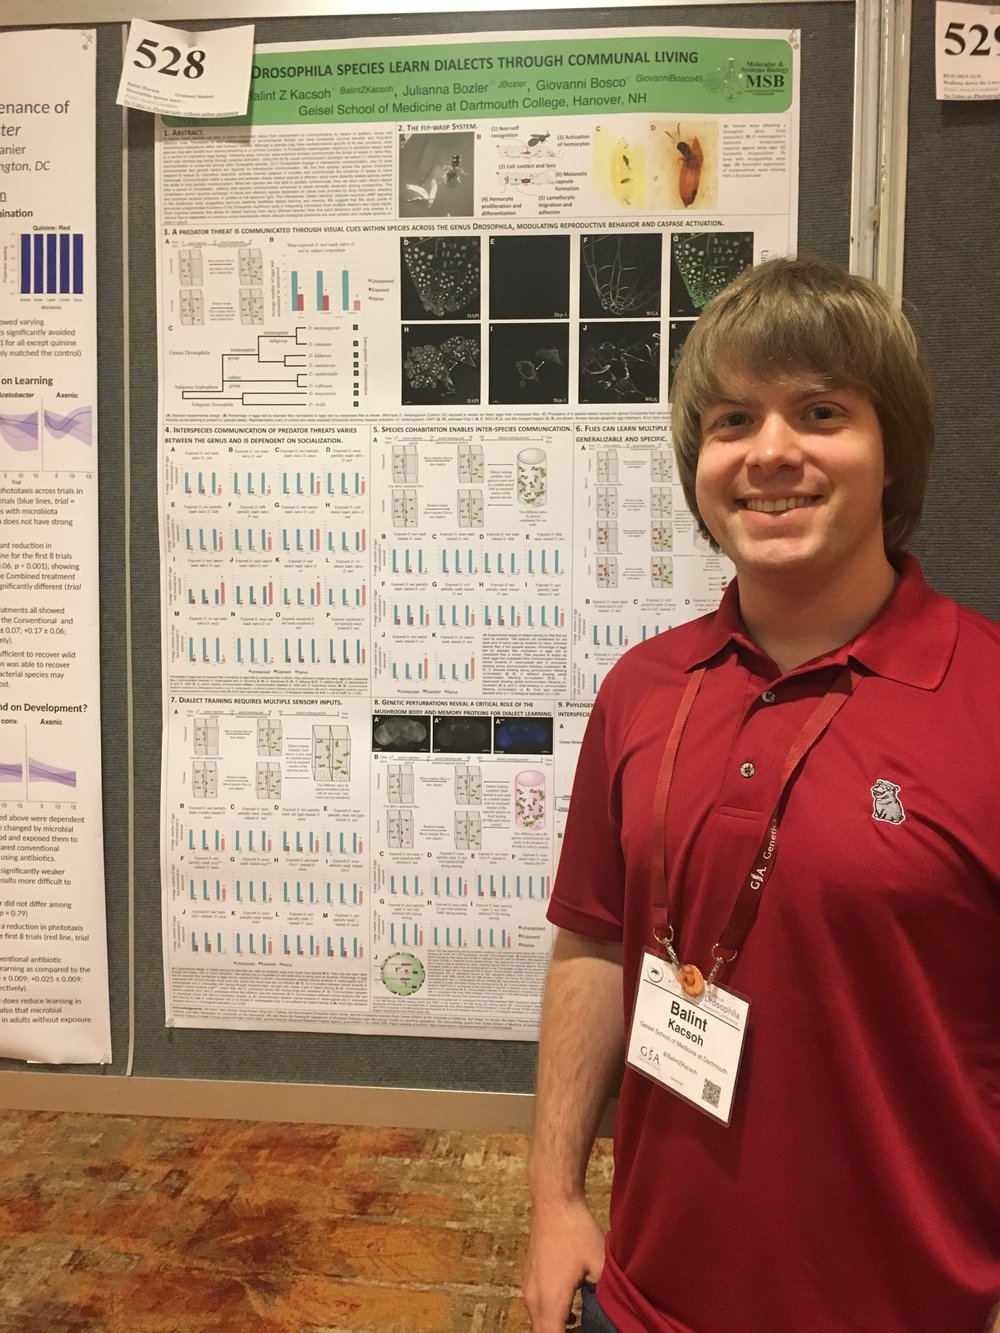 At the 59th Annual Drosophila Research Conference, Philadelphia, PA, 2018